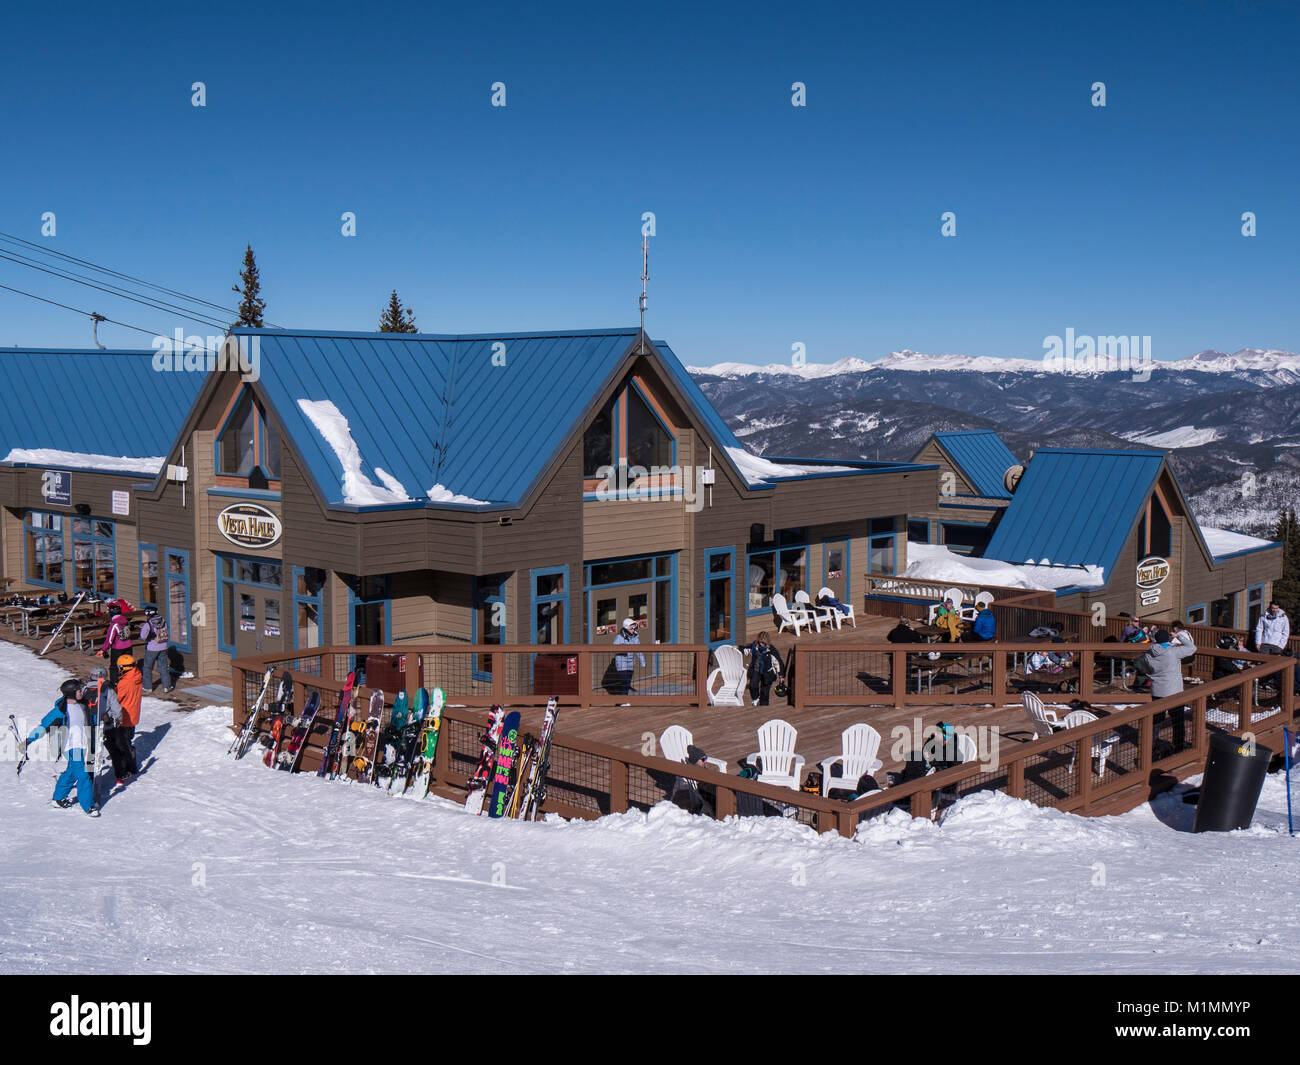 Whitefish Mt Ski Resort